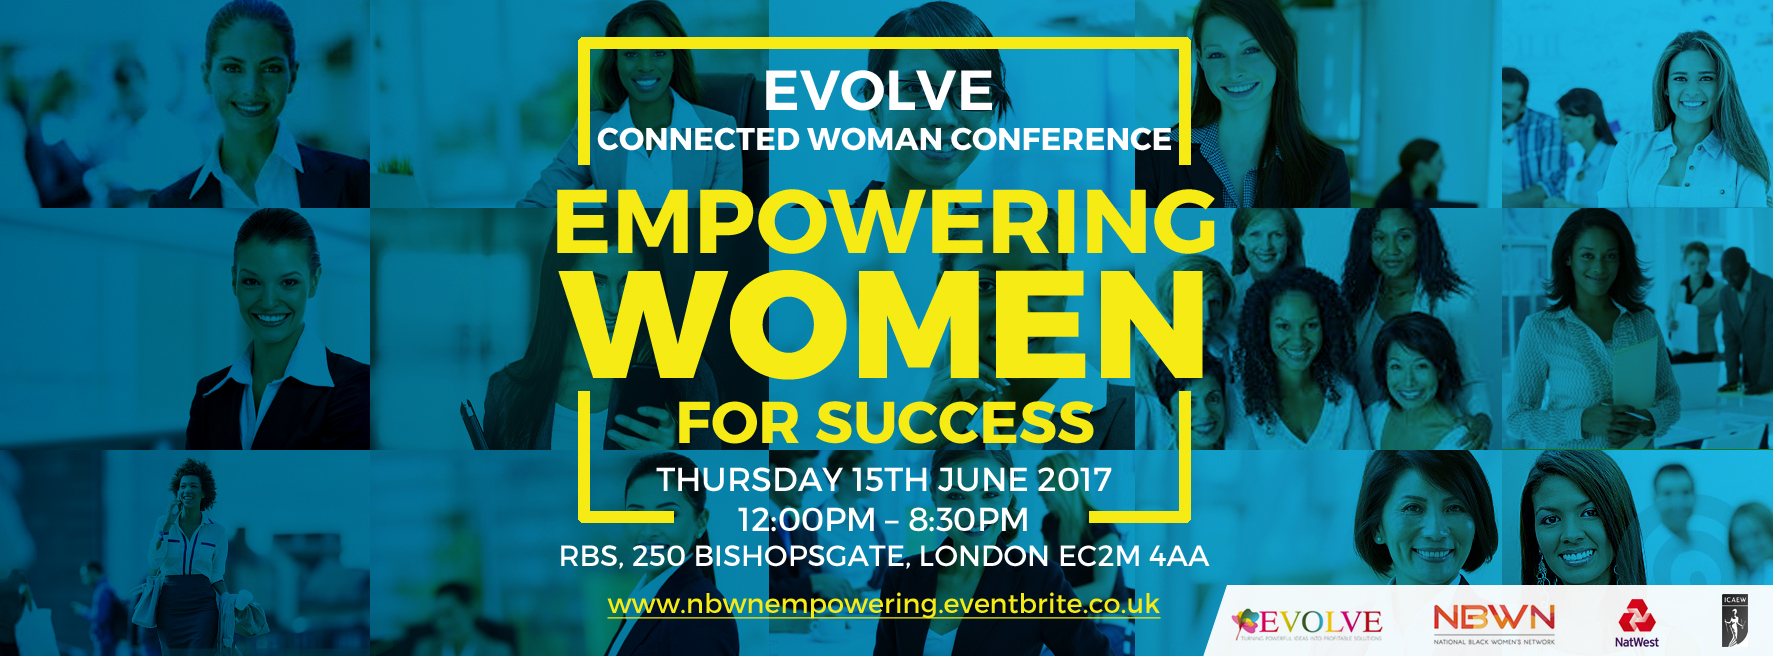 Connected Woman Business Conference